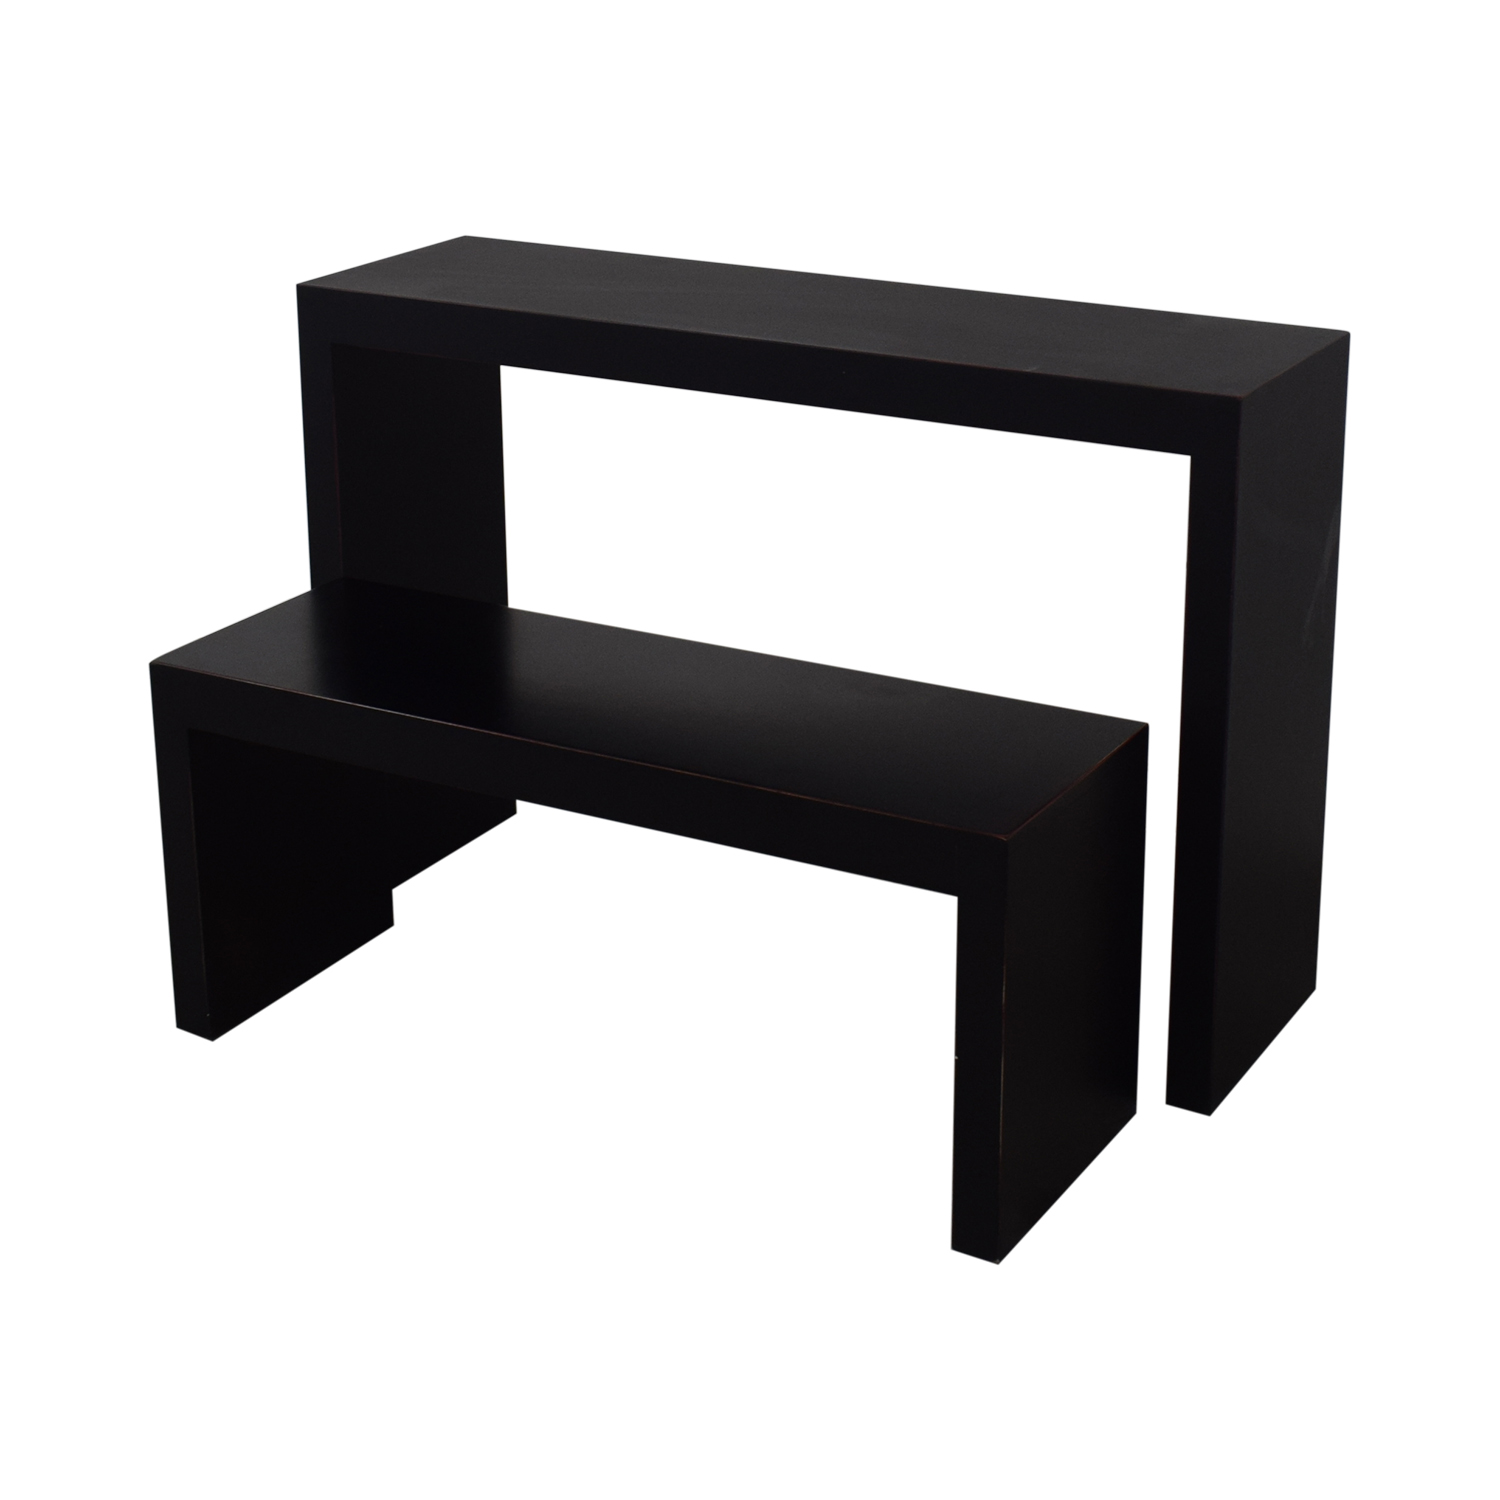 Italian Bench Desk coupon